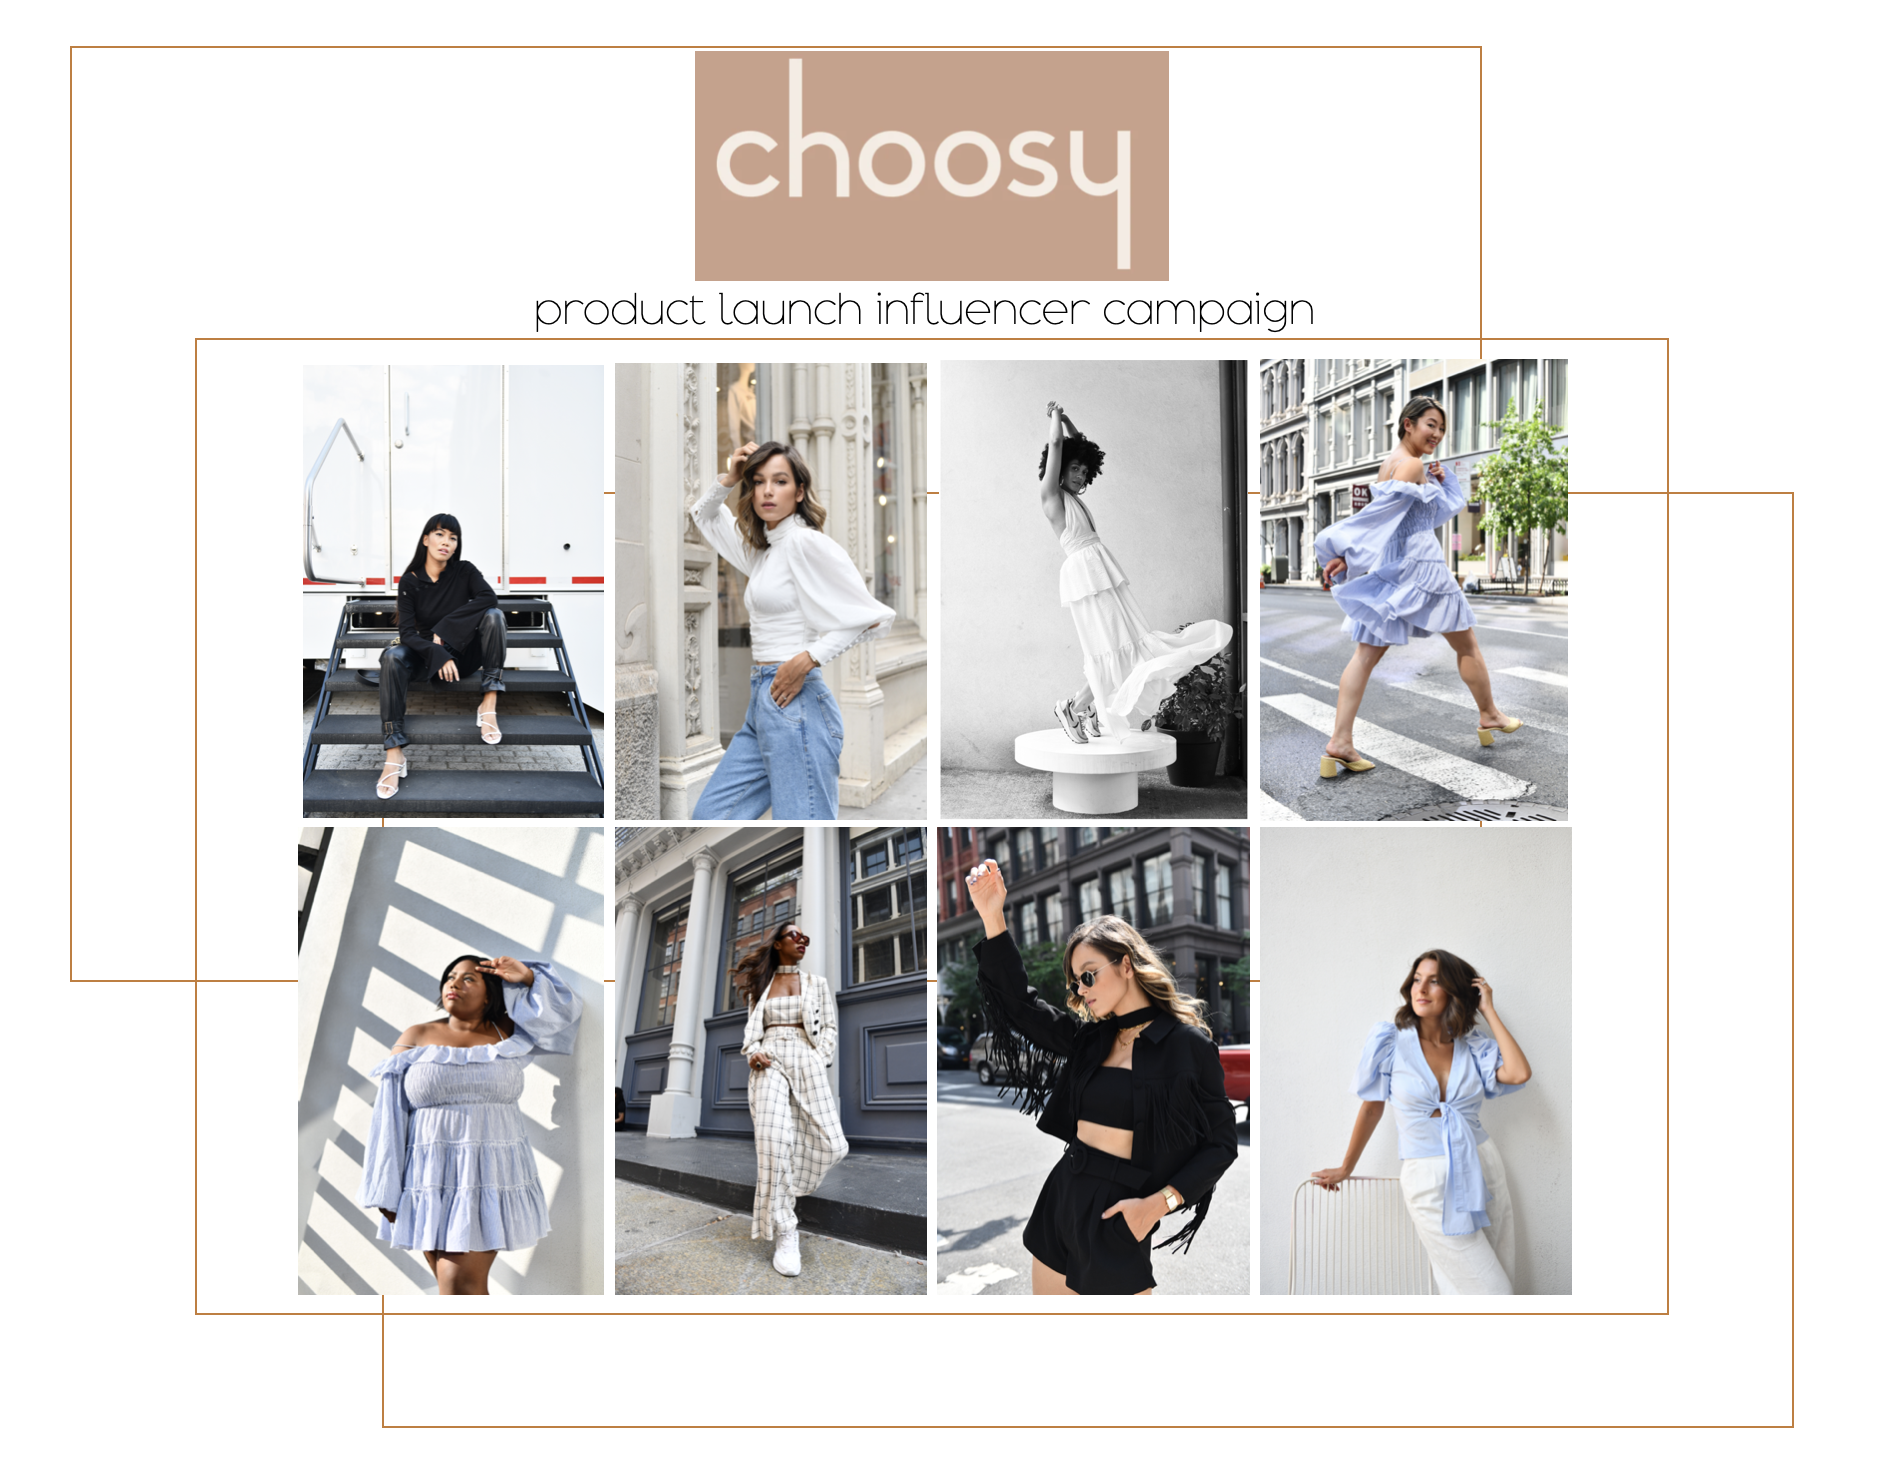 Get Choosy Influencer campaign